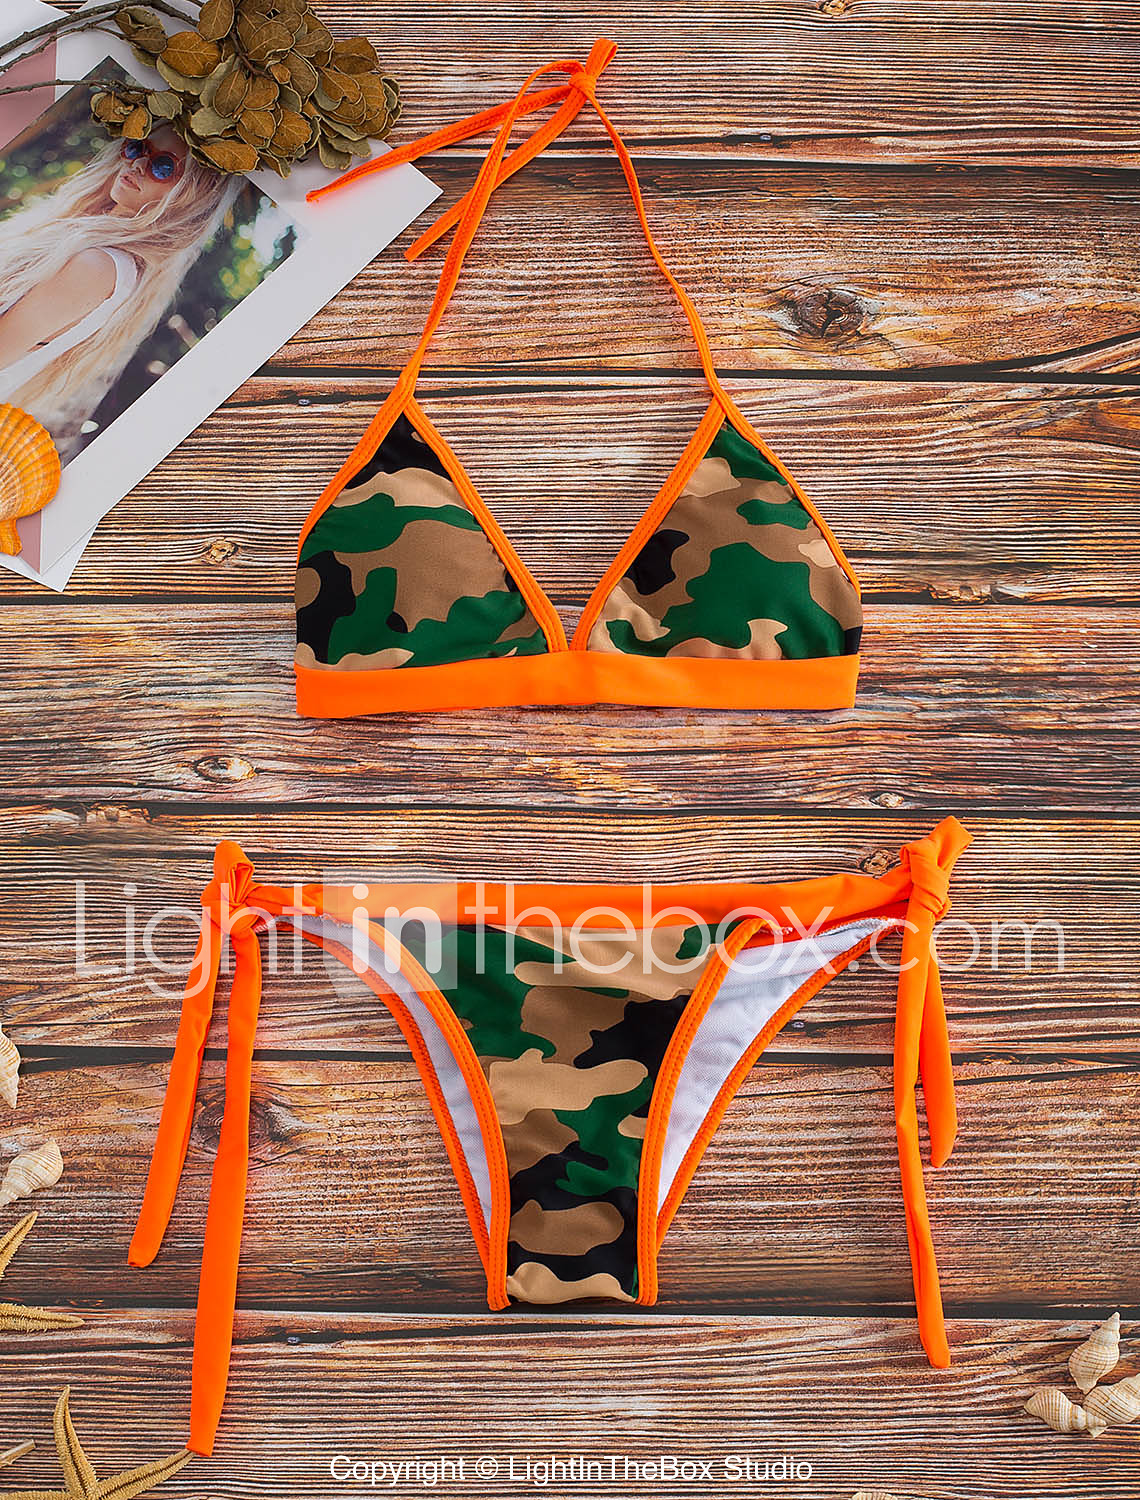 8627f7d3c93 Women s Floral Halter Neck Orange Pink Bikini Swimwear - Camo   Camouflage  Print M L XL Orange